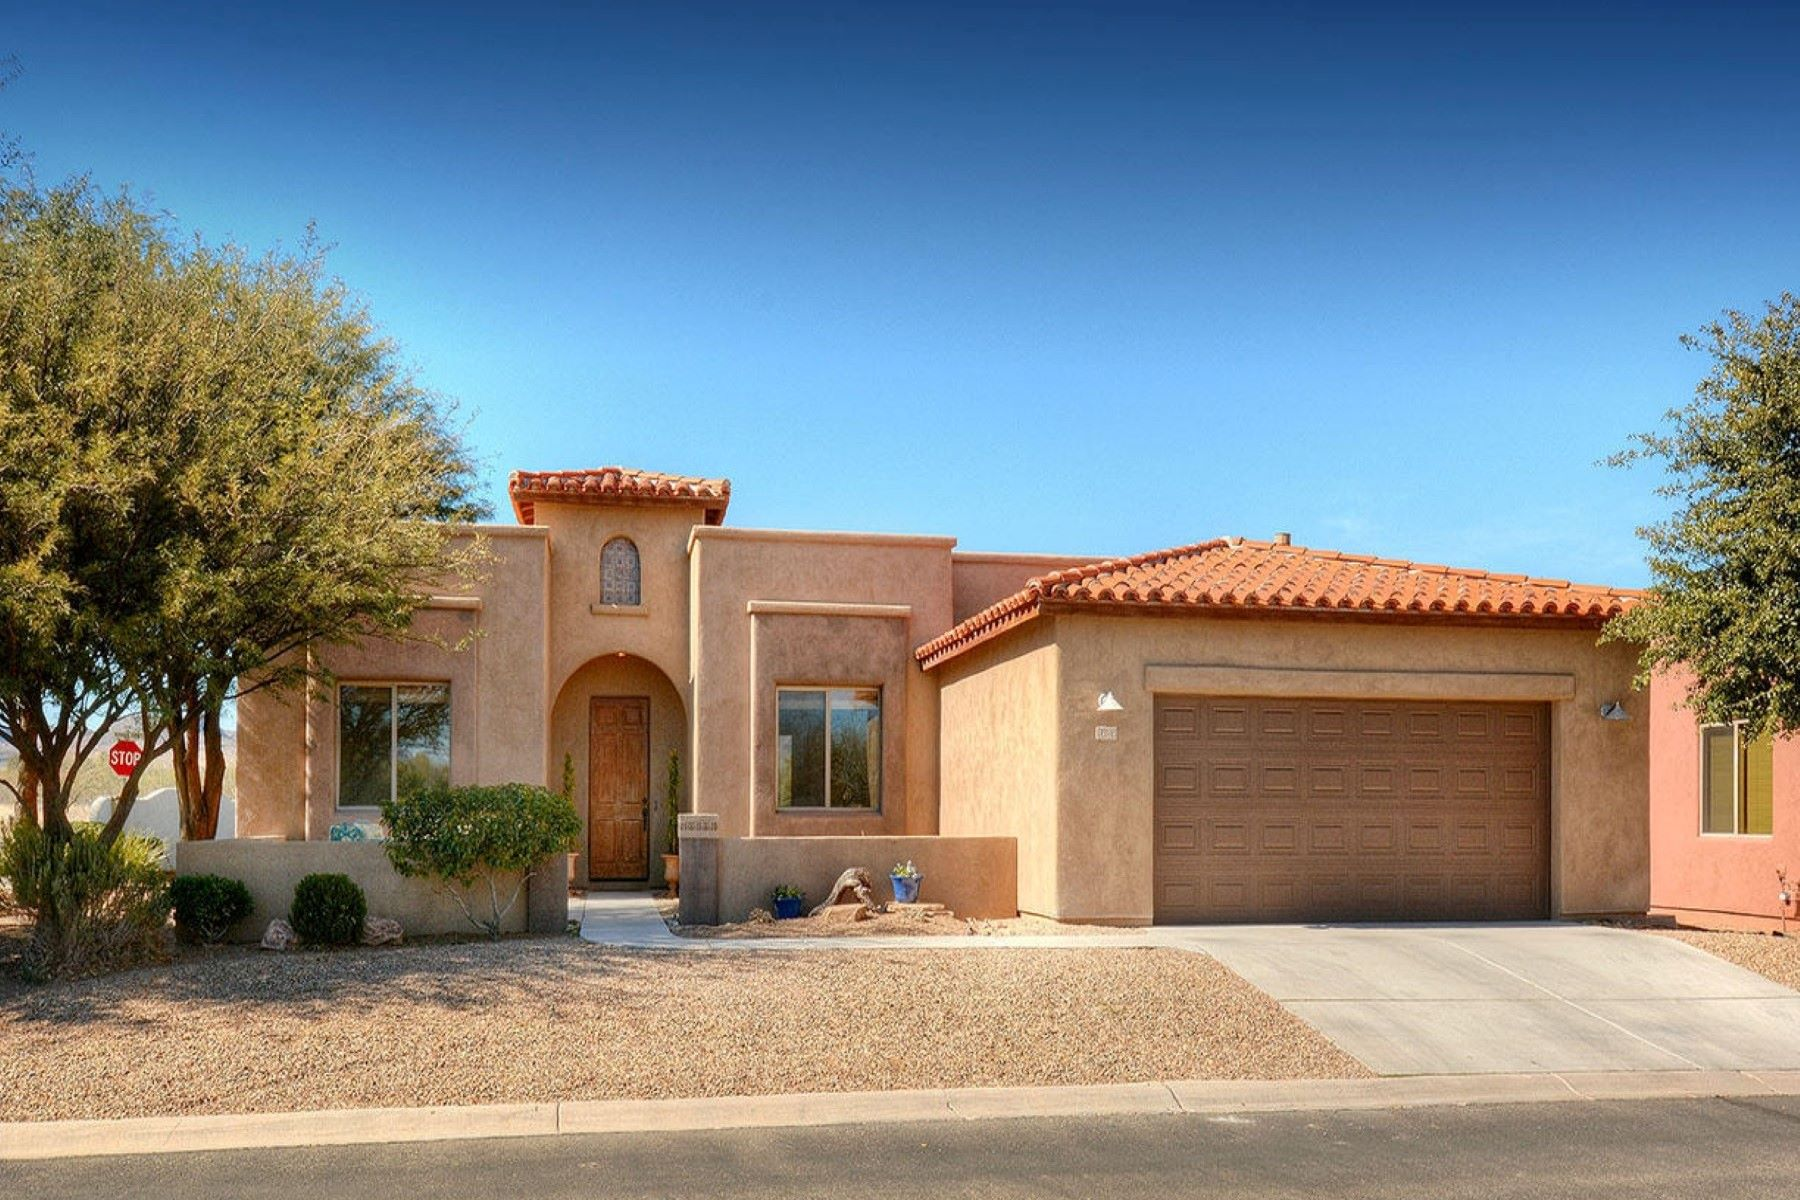 Single Family Home for Sale at Beautiful Dorn Agave Grande home with golf and mountain views 70 Palmas Ct Tubac, Arizona, 85646 United States